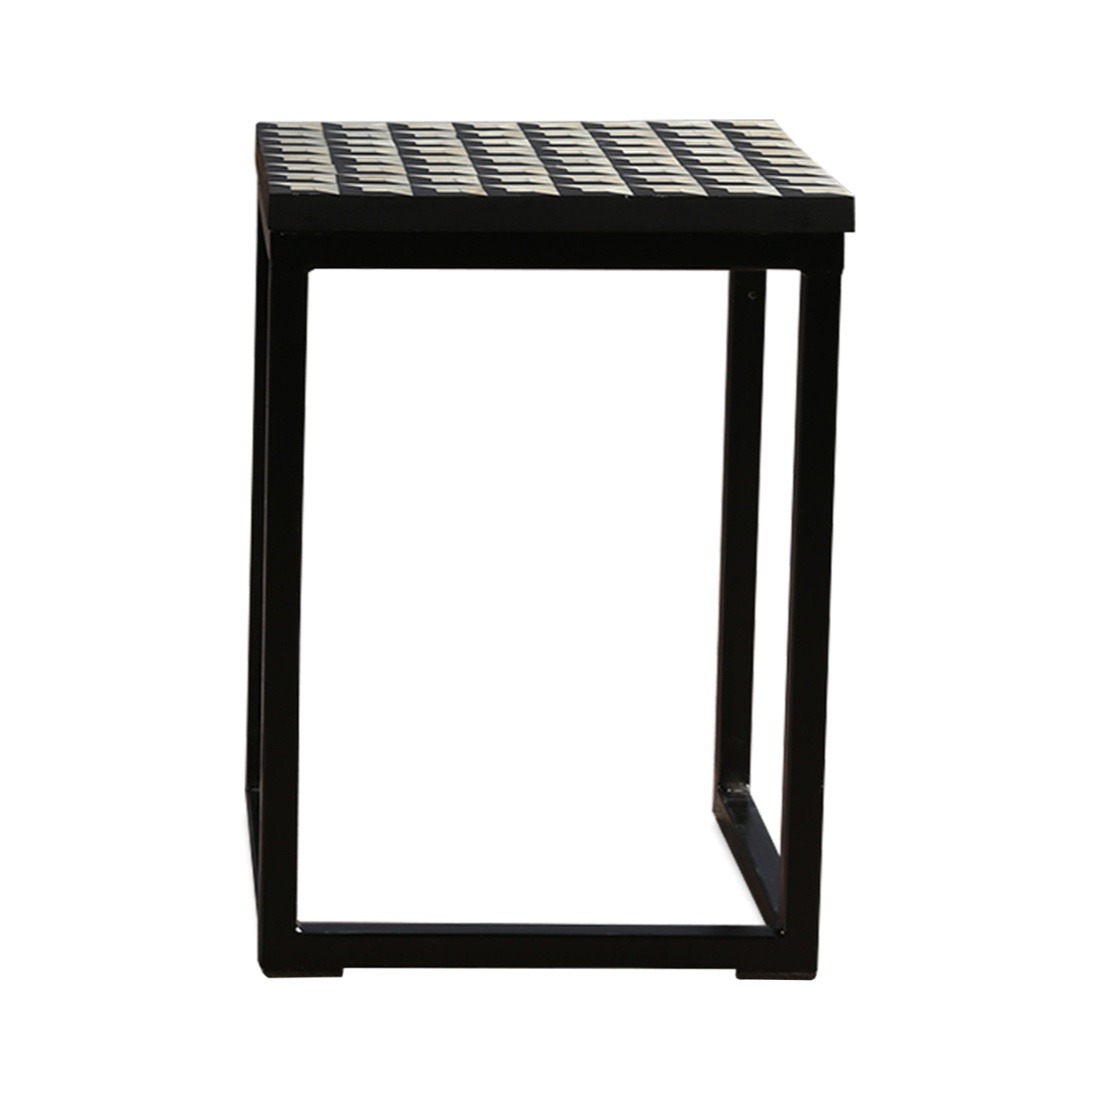 Aida Solid Wood Outdoor Table in Black & White Colour by HomeTown